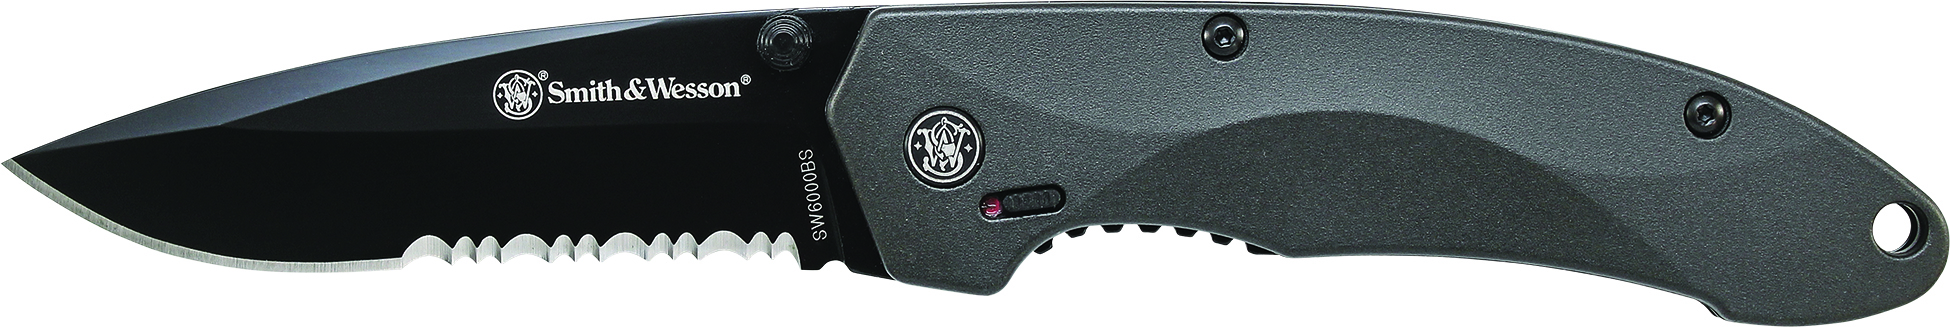 SW6000BS - Smith & Wesson M.A.G.I.C. Assist w/Liner Lock, Thumb Studs, Finger Actuator, 40% Ser 4034 Stainless Steel